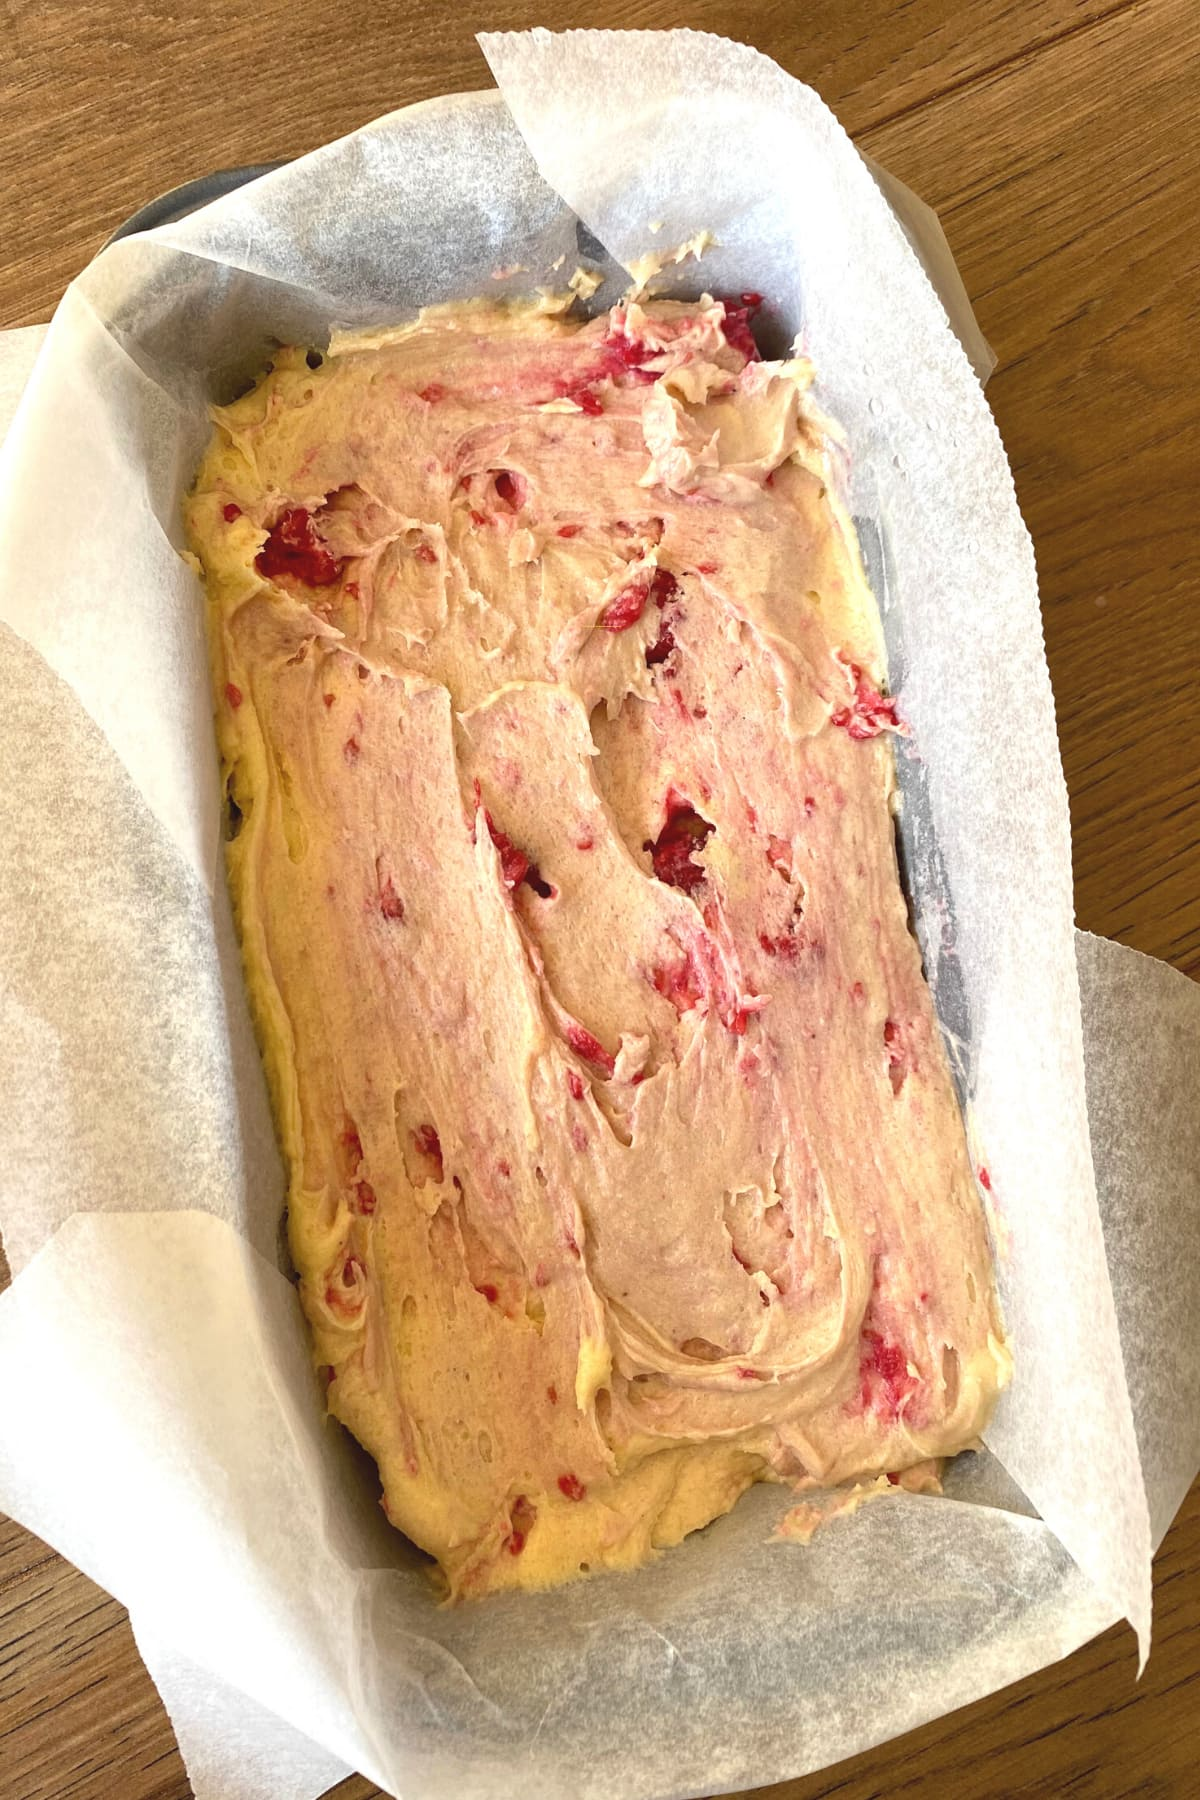 Cake ready for the oven